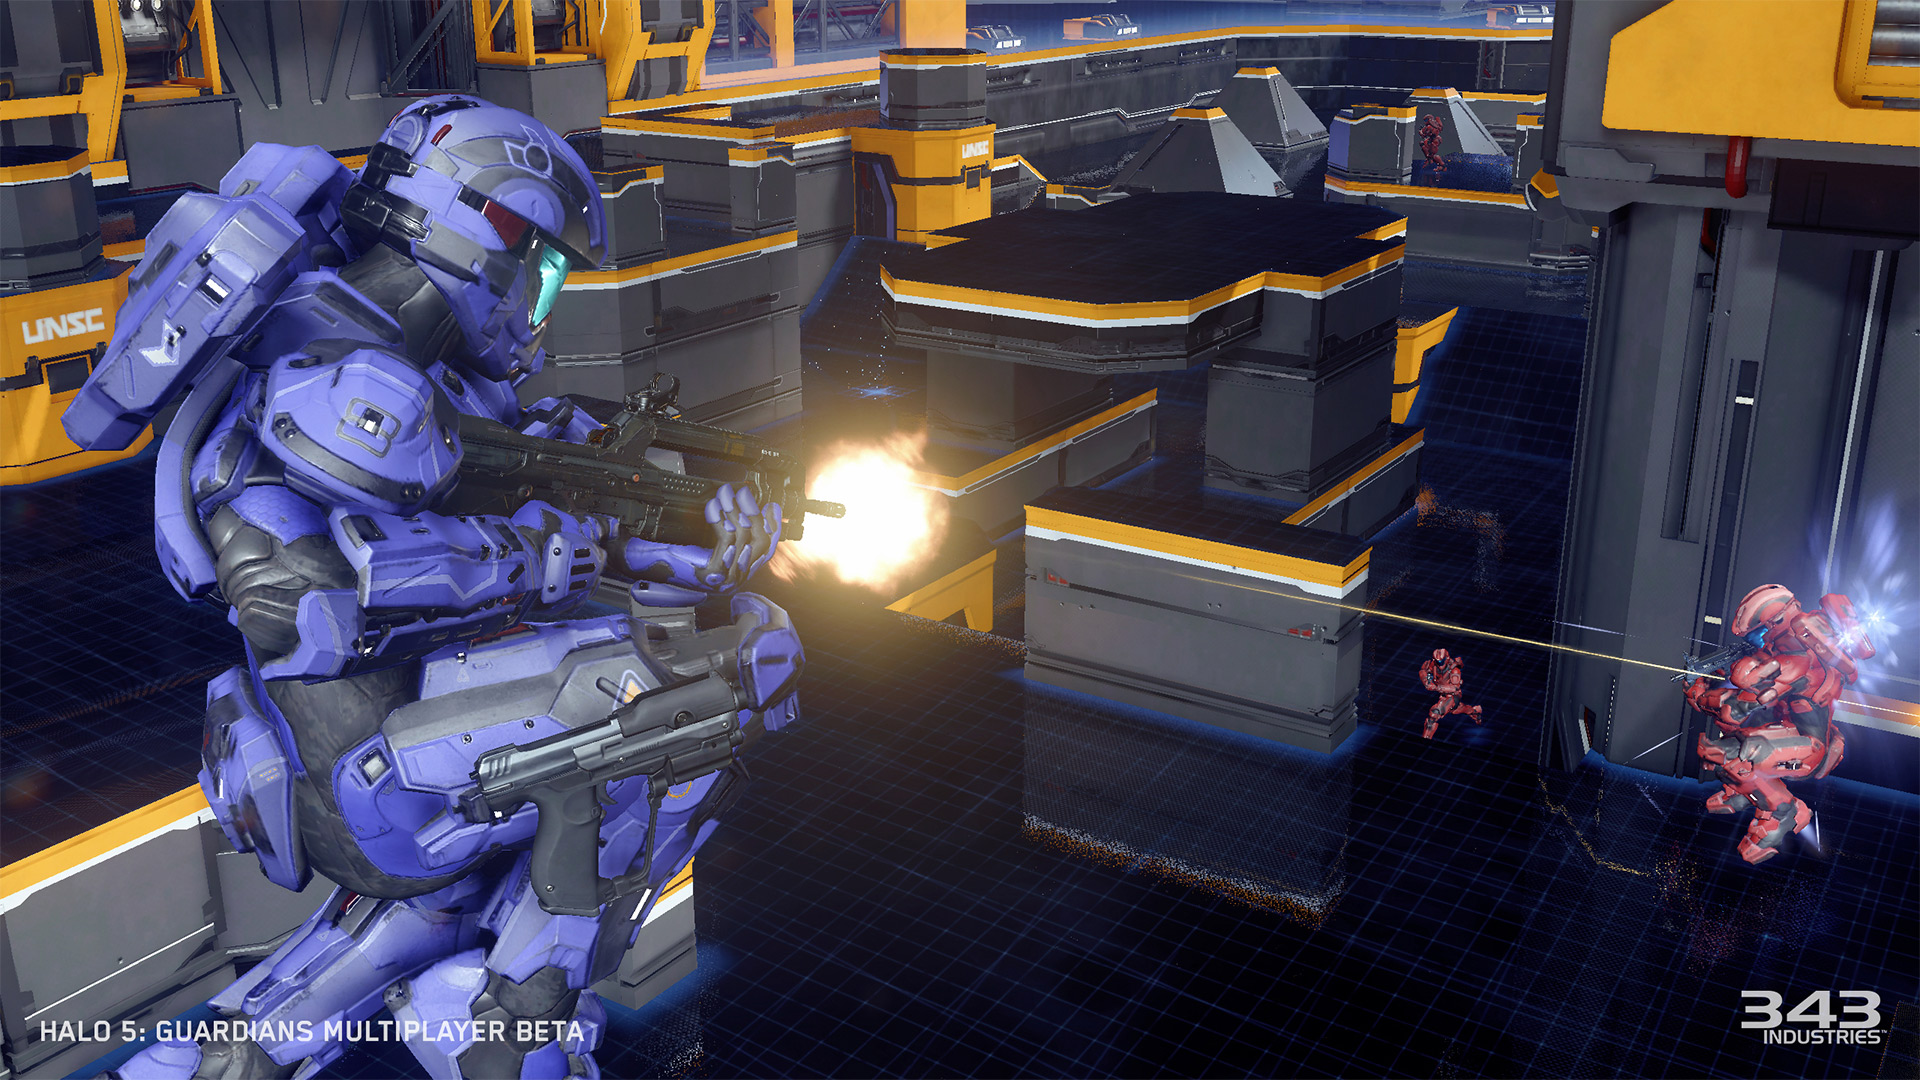 https://content.halocdn.com/media/Default/games/halo-5-guardians/media/breakout-gallery/h5-mp-beta-crossfire-ambush-5b2e72fda037455fb0d7a95e42984720.jpg